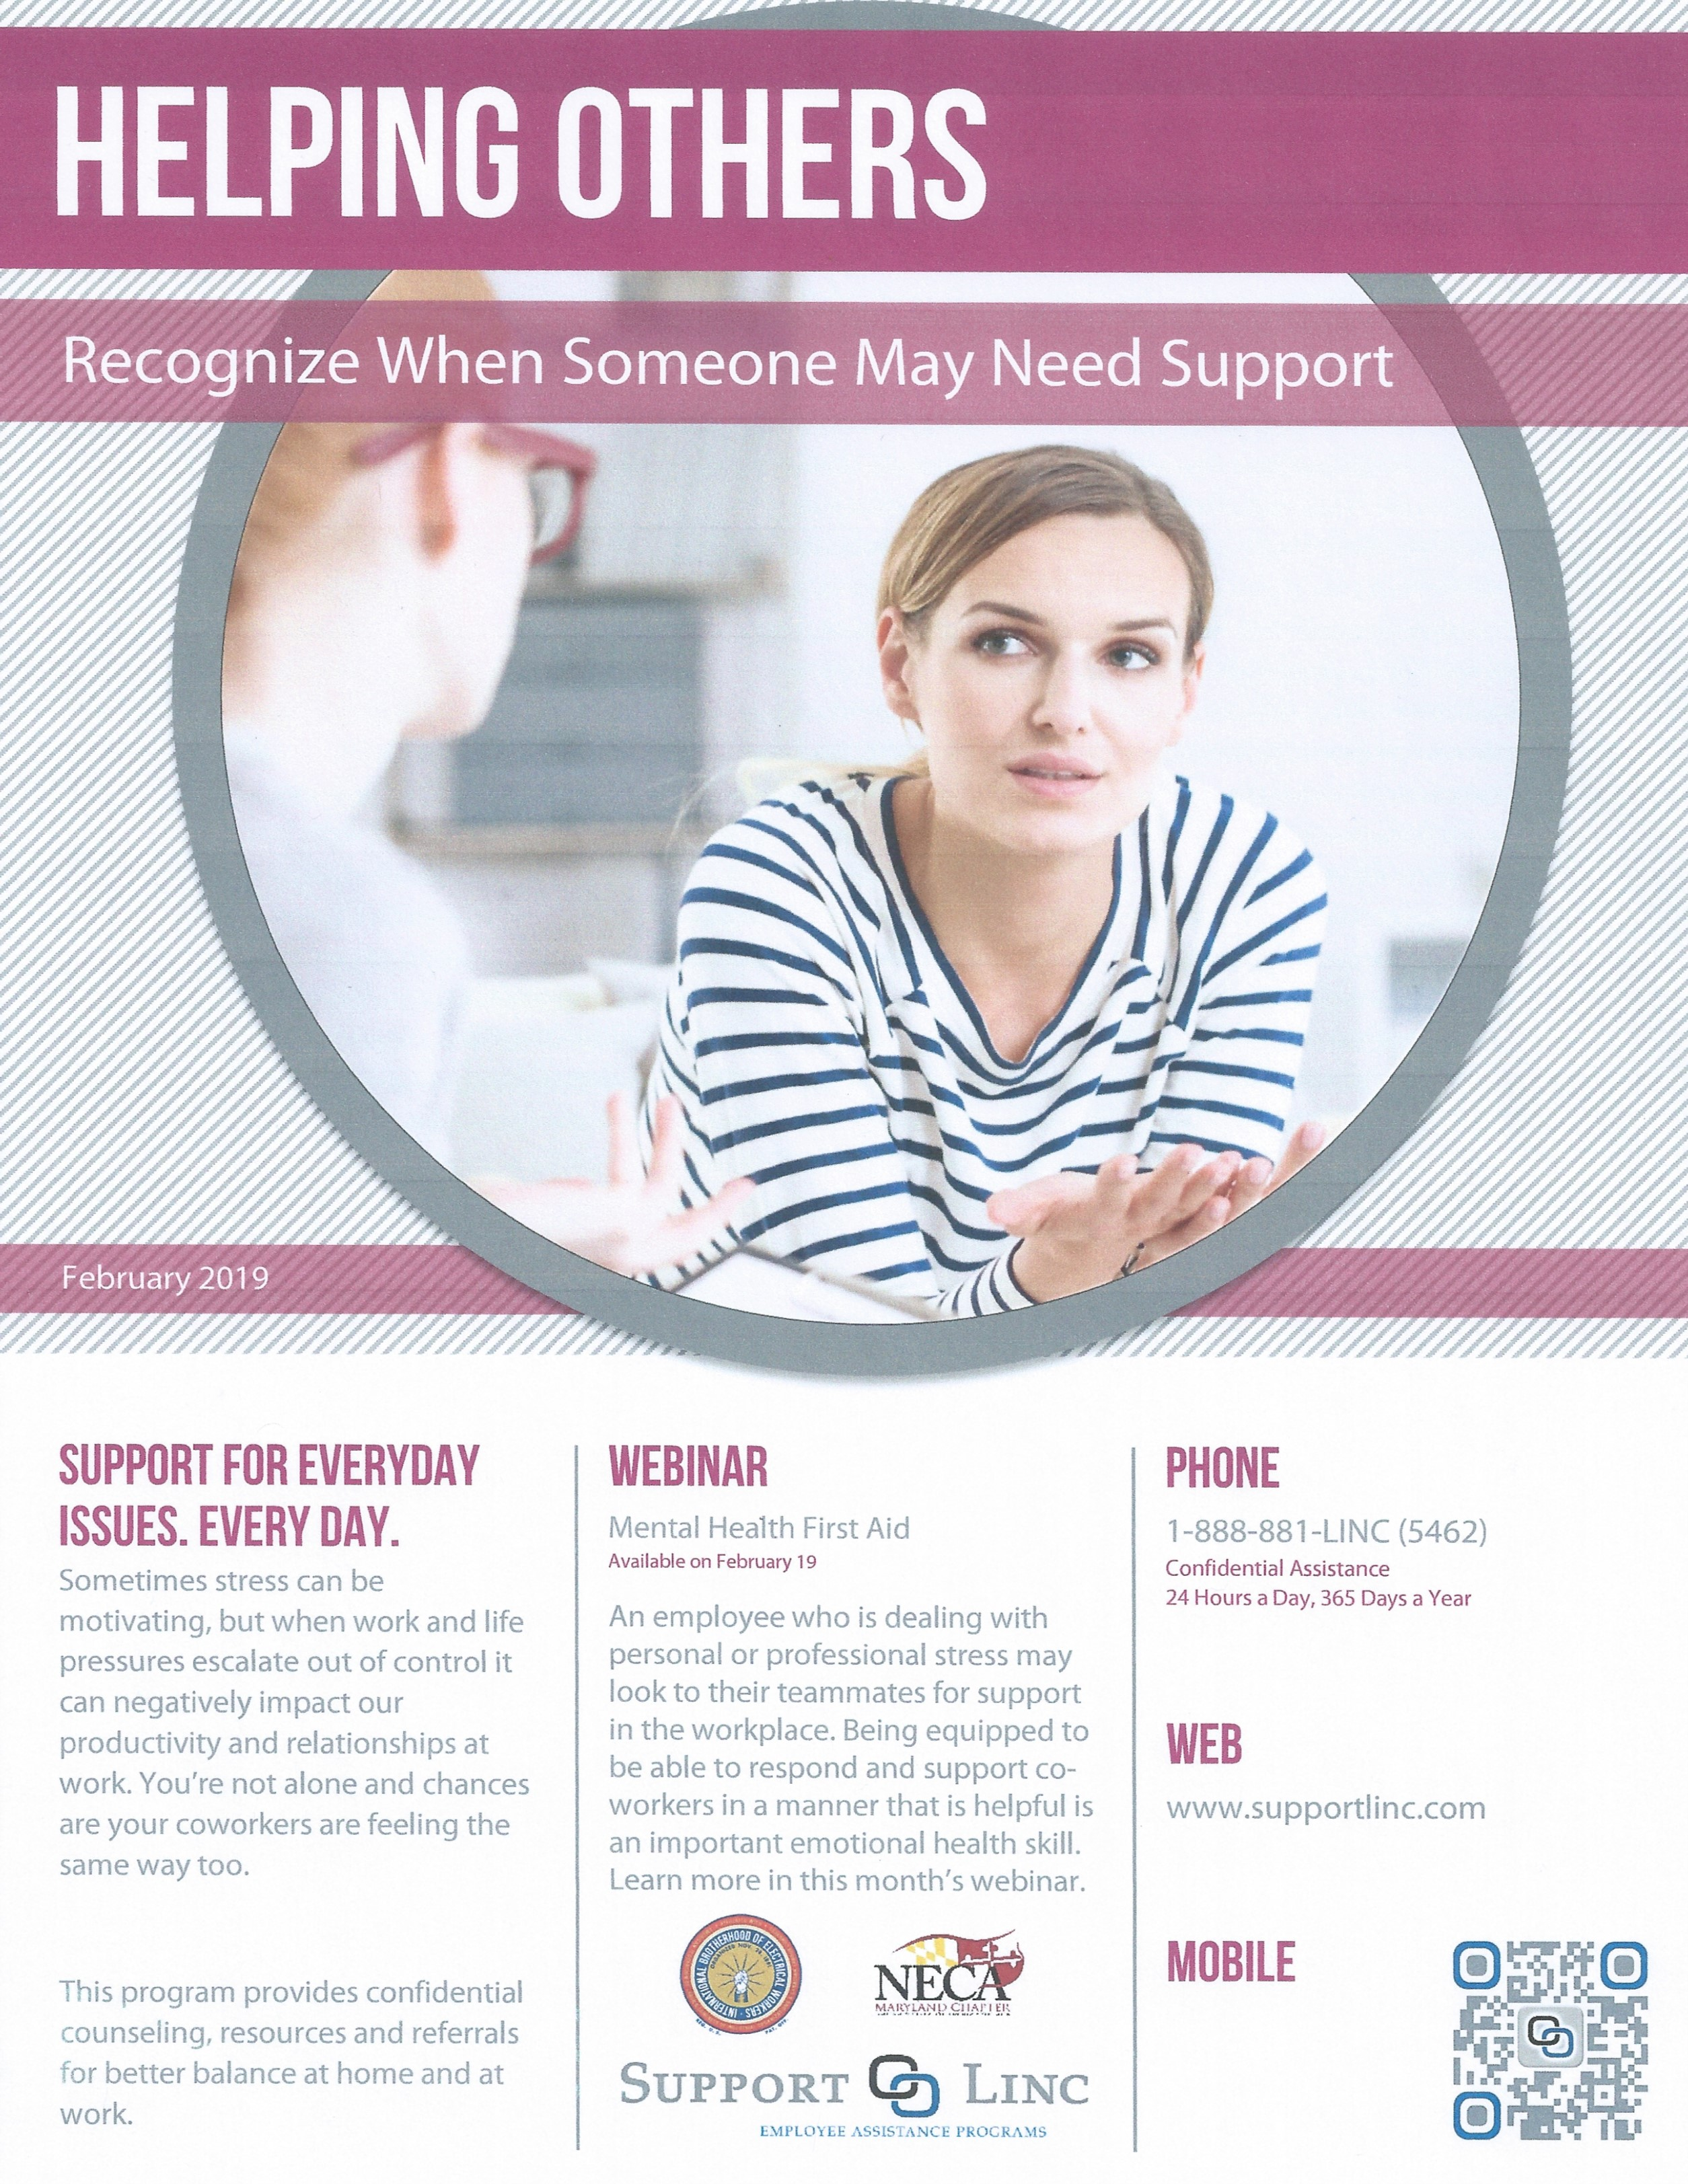 <br /><strong> Have you ever wished you knew what to say or do when a friend or coworker is going through a difficult or stressful situation? Check out the webinar